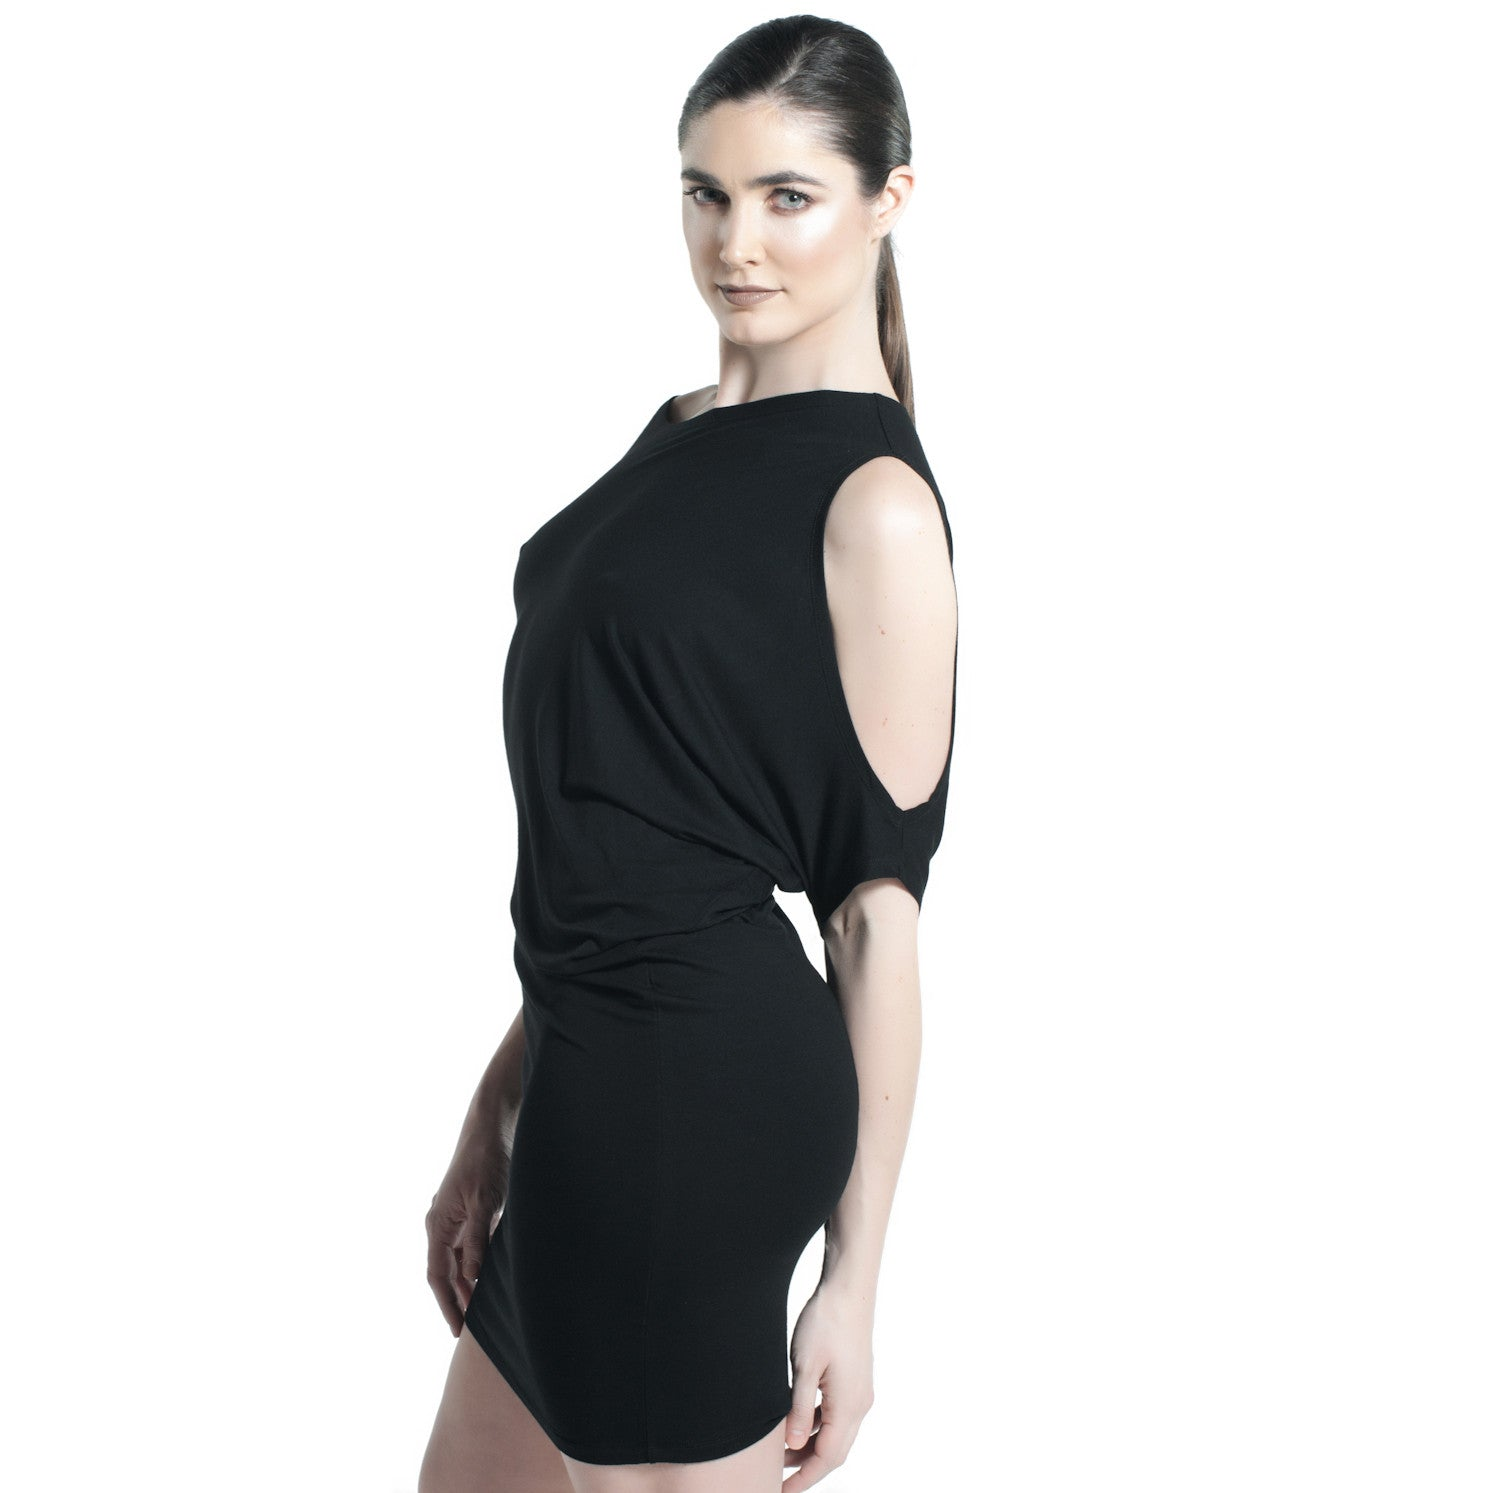 ASYMMETRICAL SHOULDER CUT JERSEY TUNIC DRESS IN BLACK